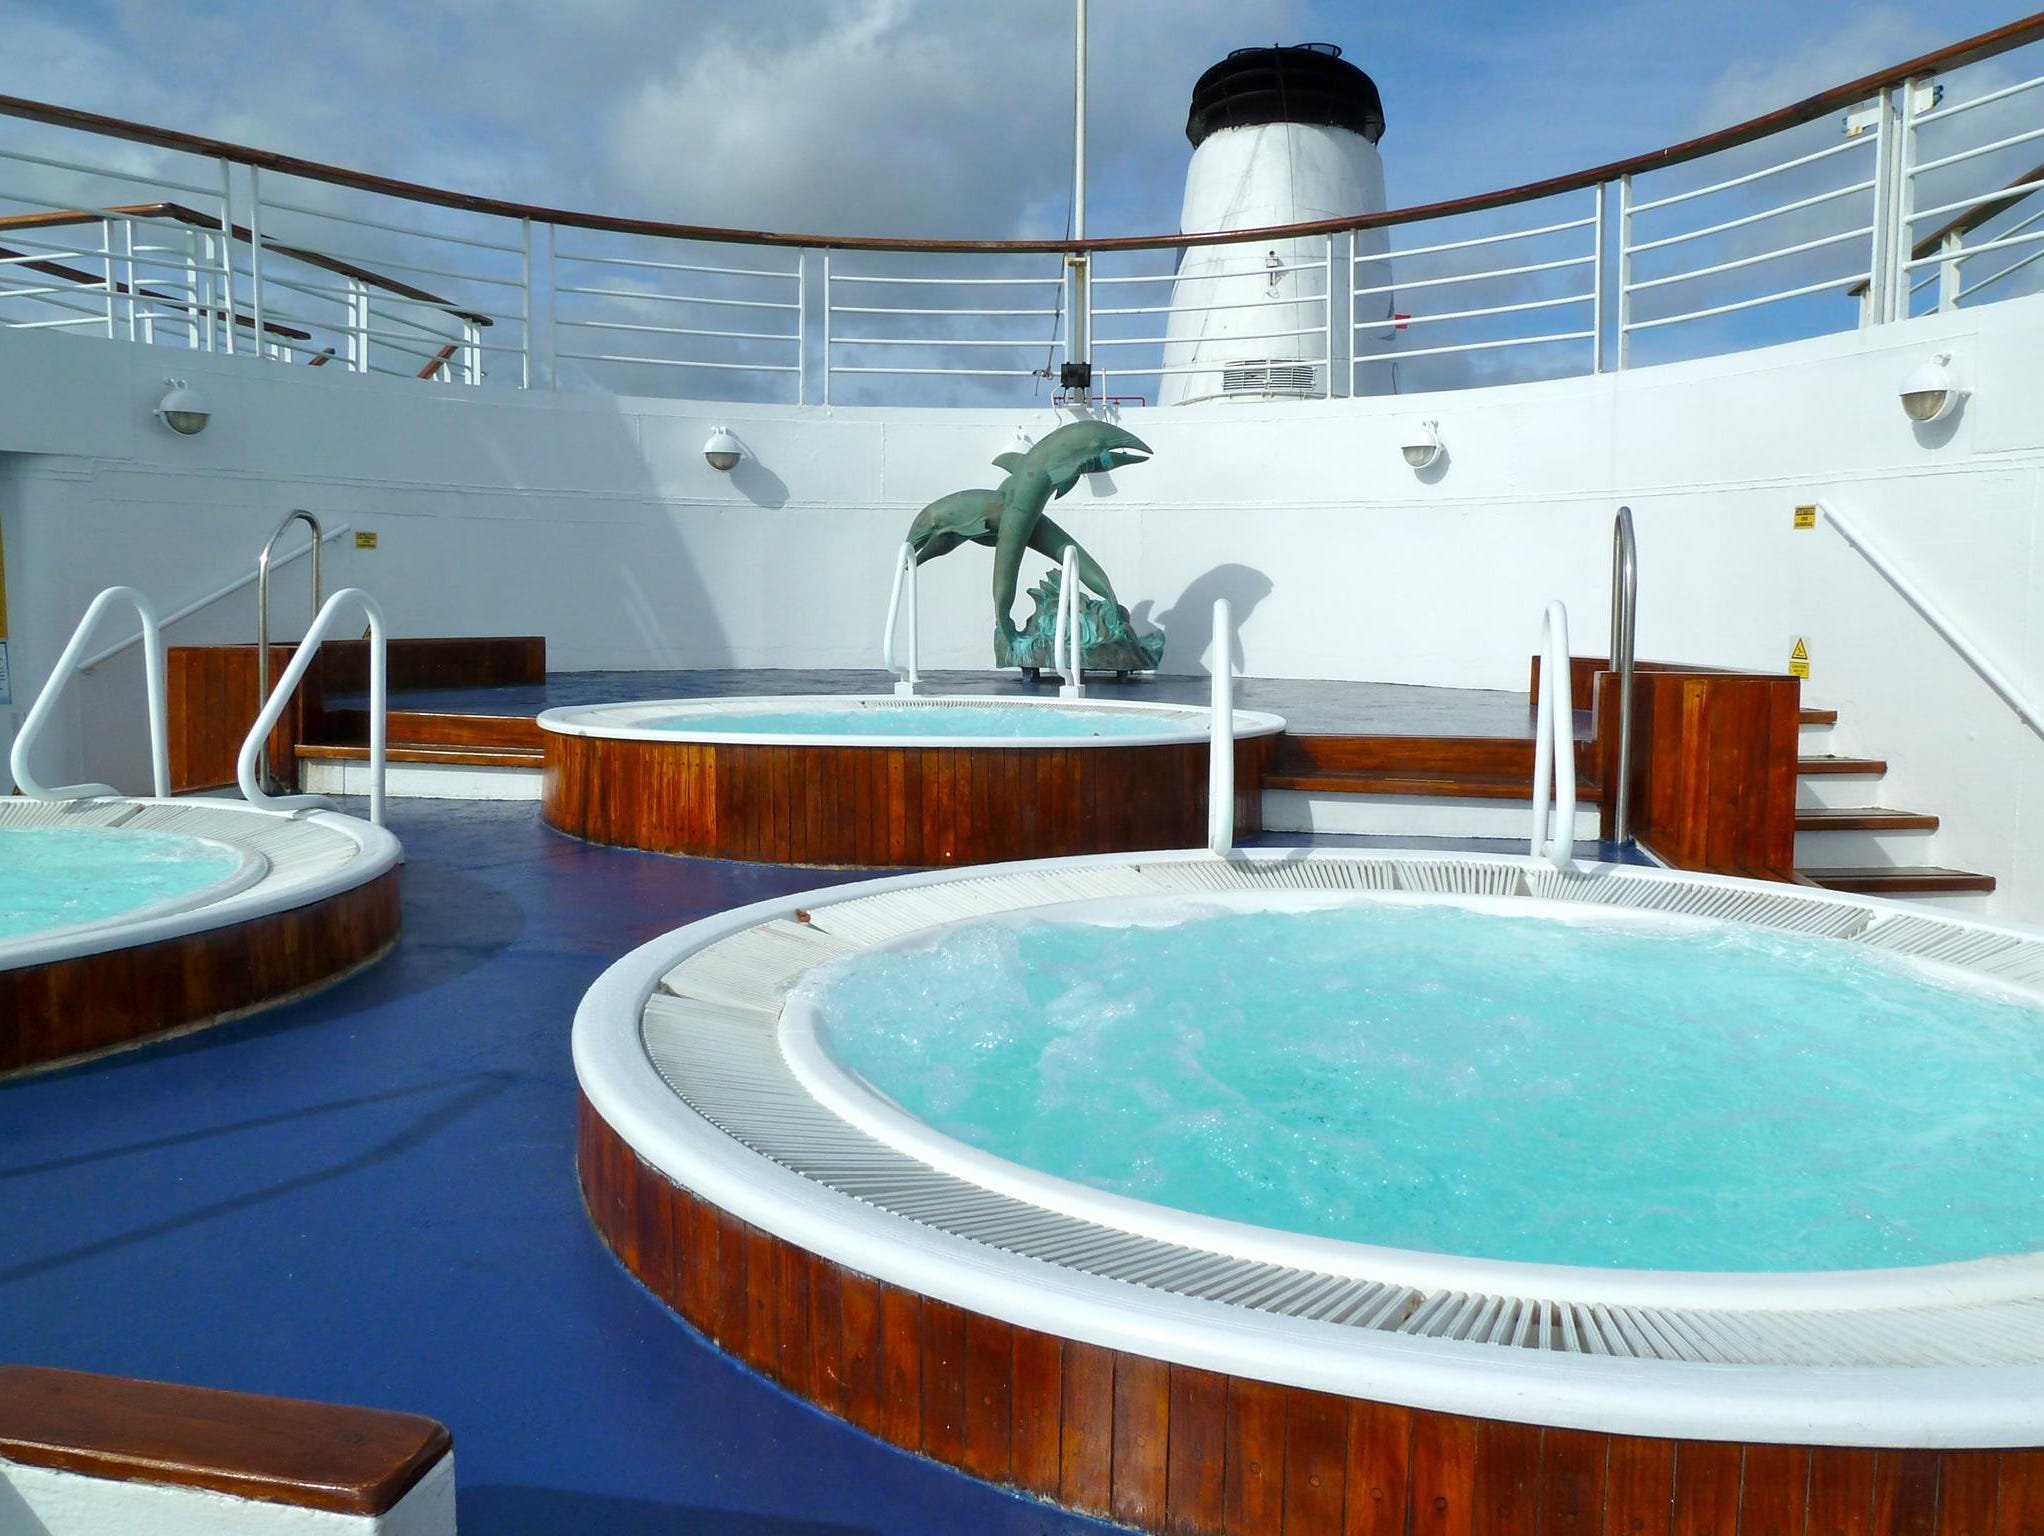 Here is another view of the Jacuzzis, which are sheltered by the deck above.